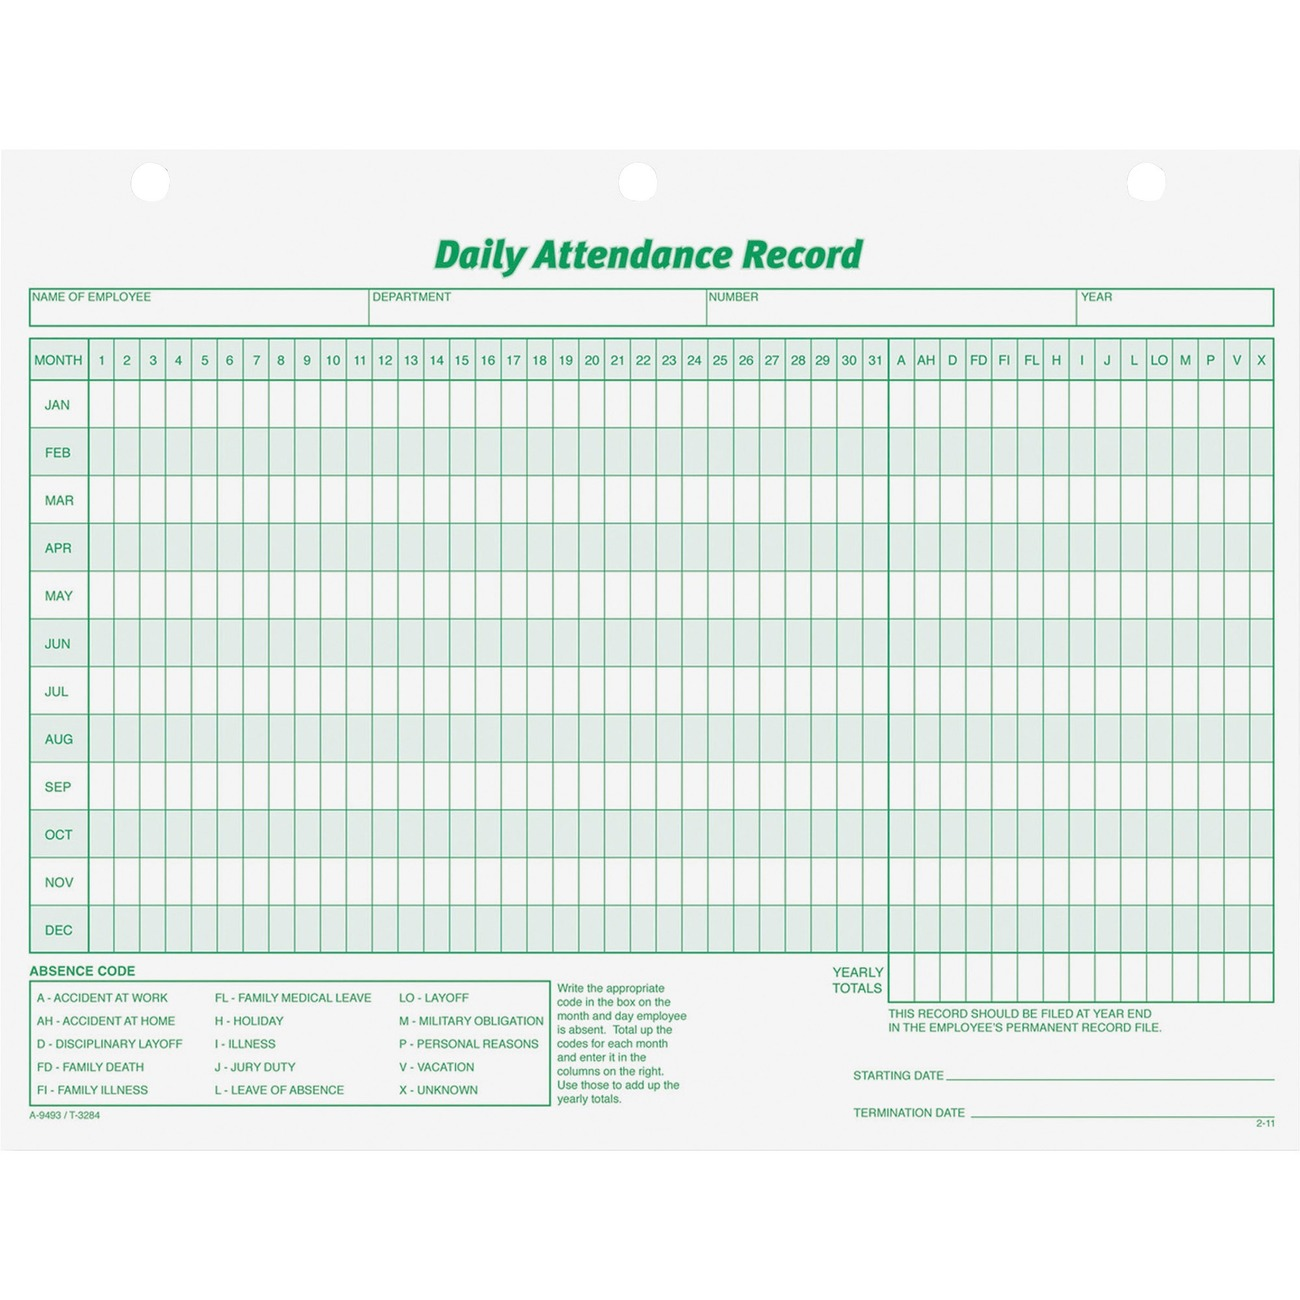 Daily Attendance Record Forms Offer An Enlarged Format To Allow Easy Entry  Of Information And Shows Complete History Of Employee Attendance For One  Year.  Employee Attendance Record Template